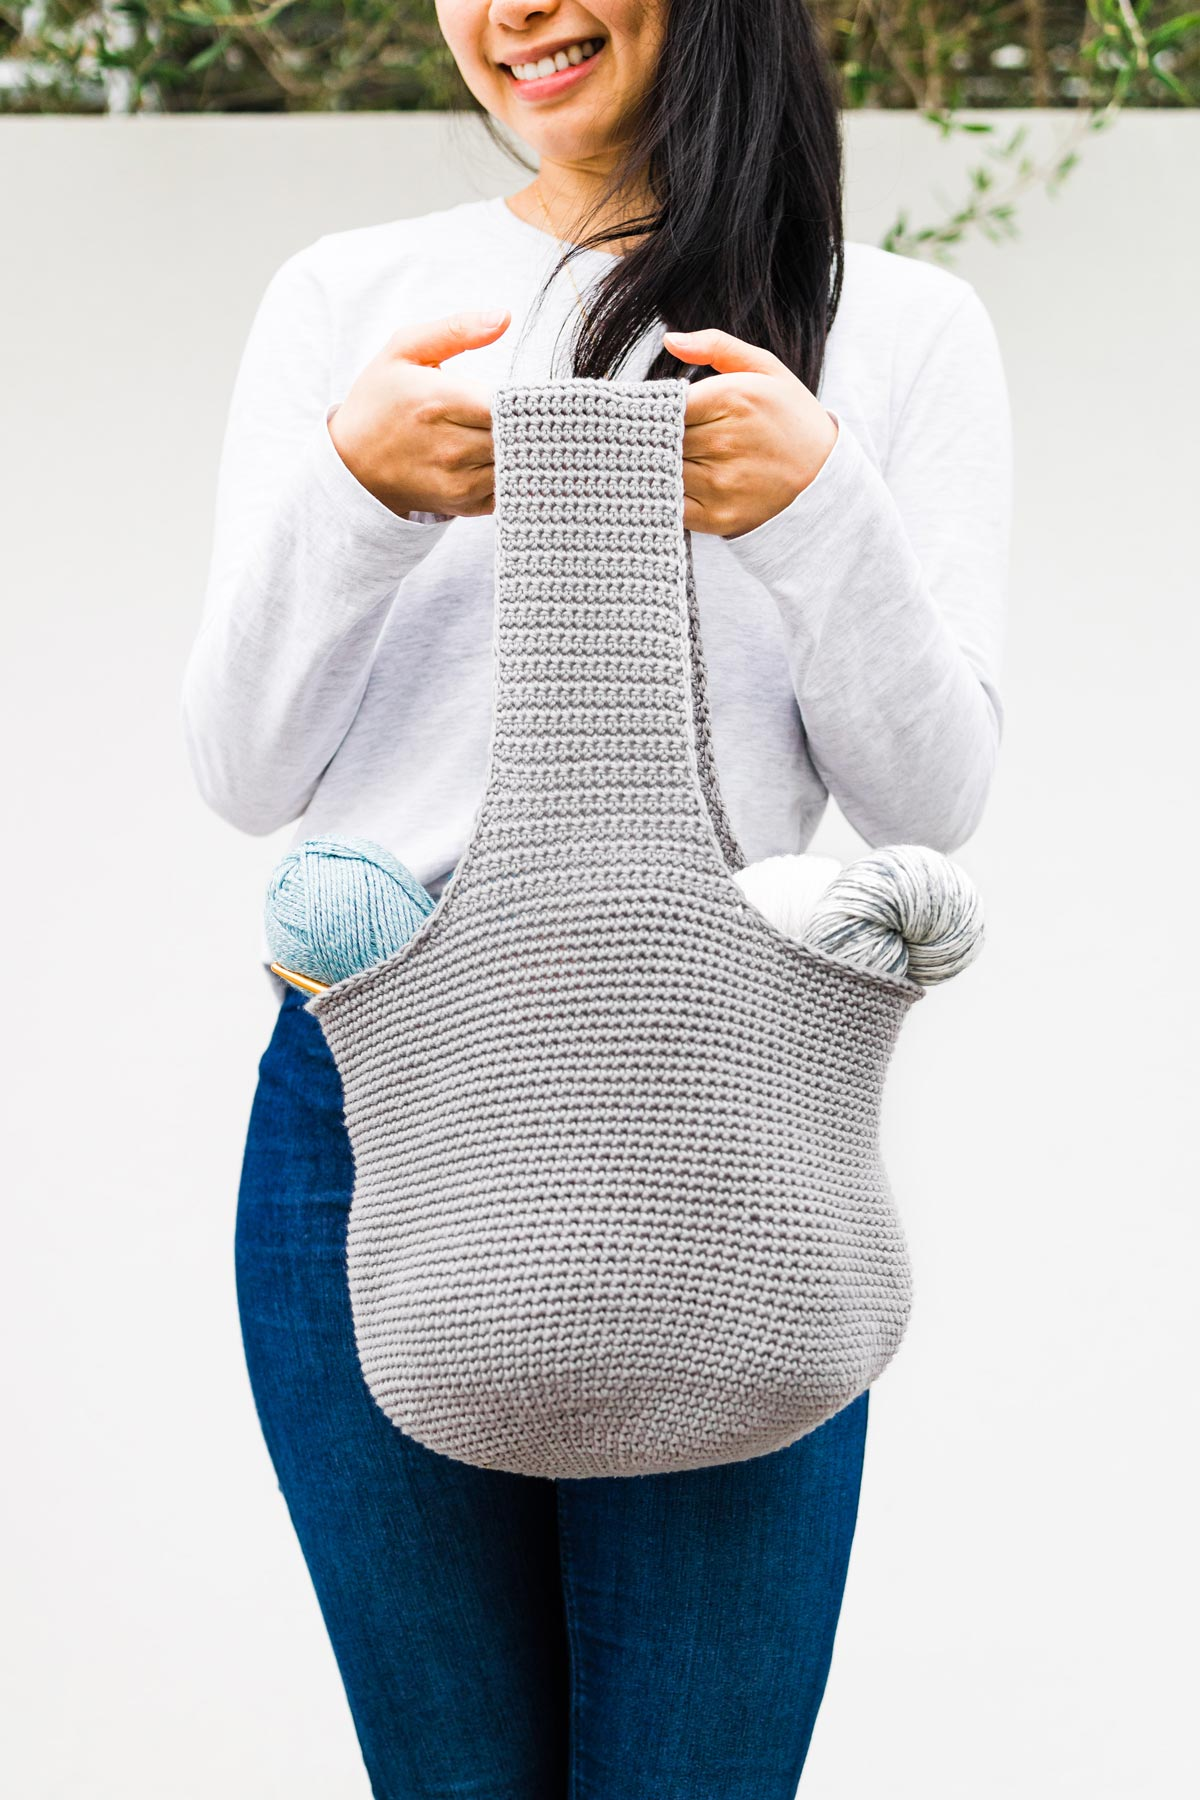 woman holding large crochet tote bag full of yarn skeins